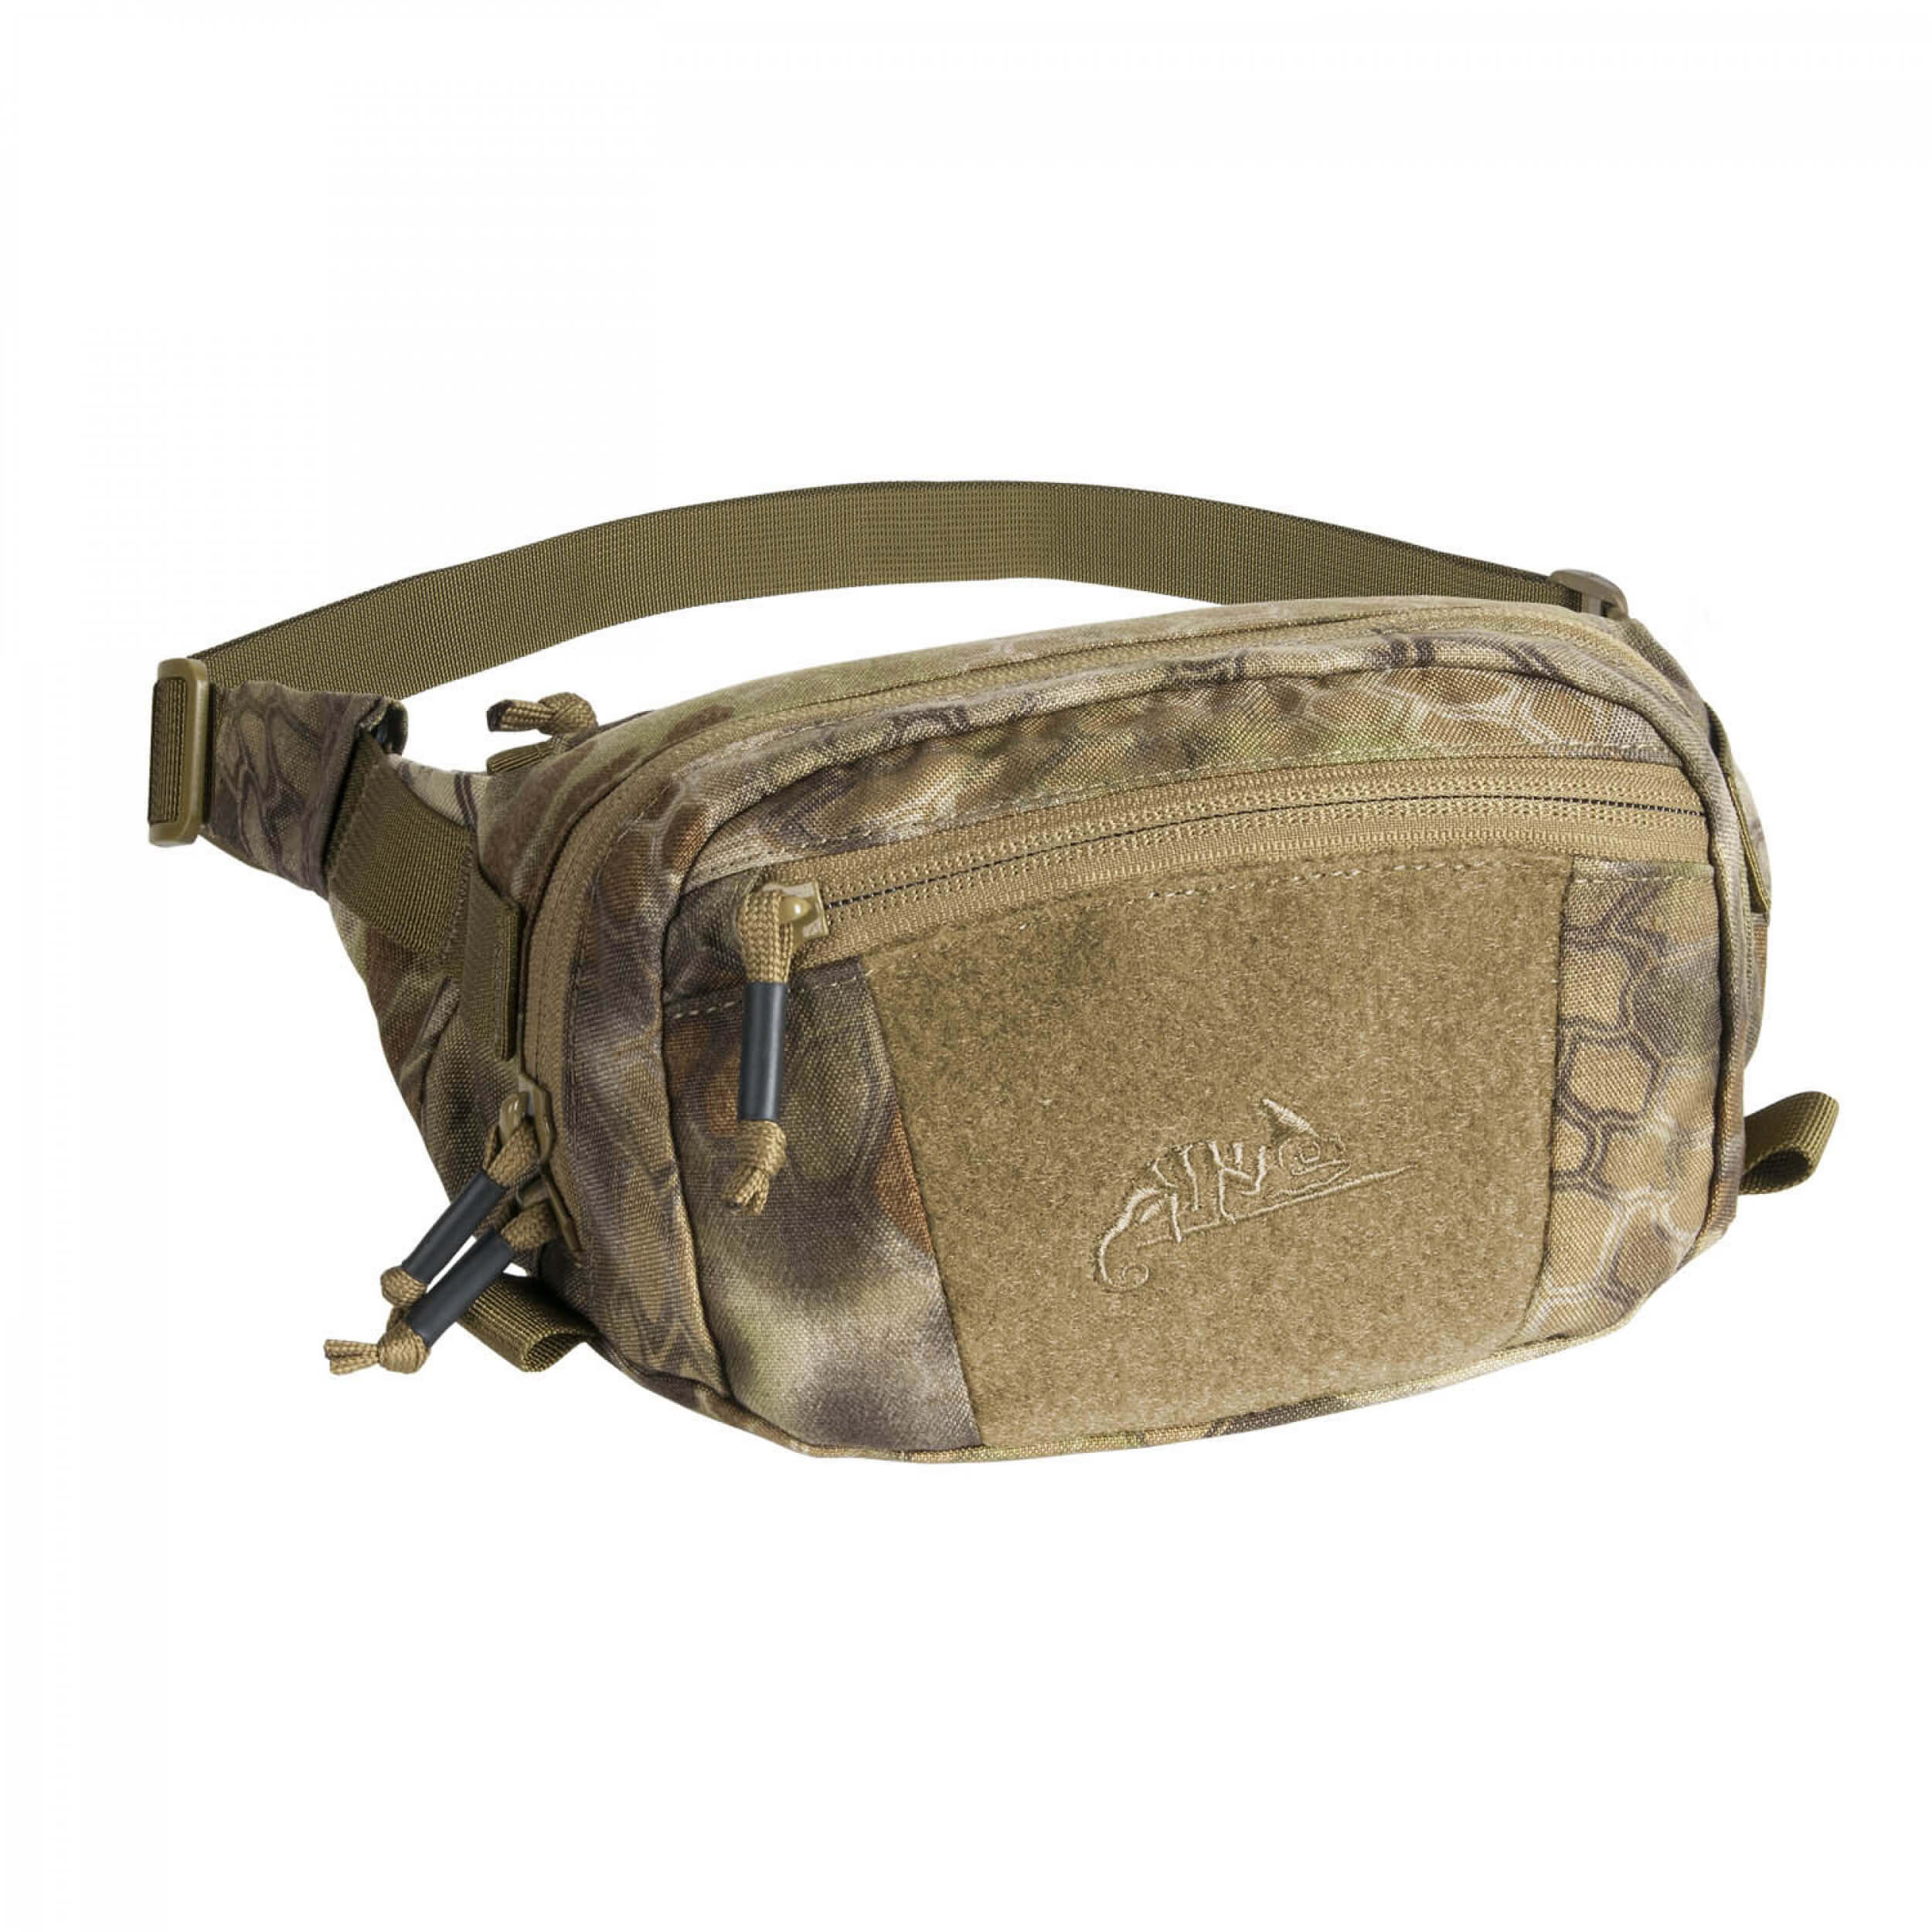 Helikon-Tex Waist Pack Possum Kryptek Highlander